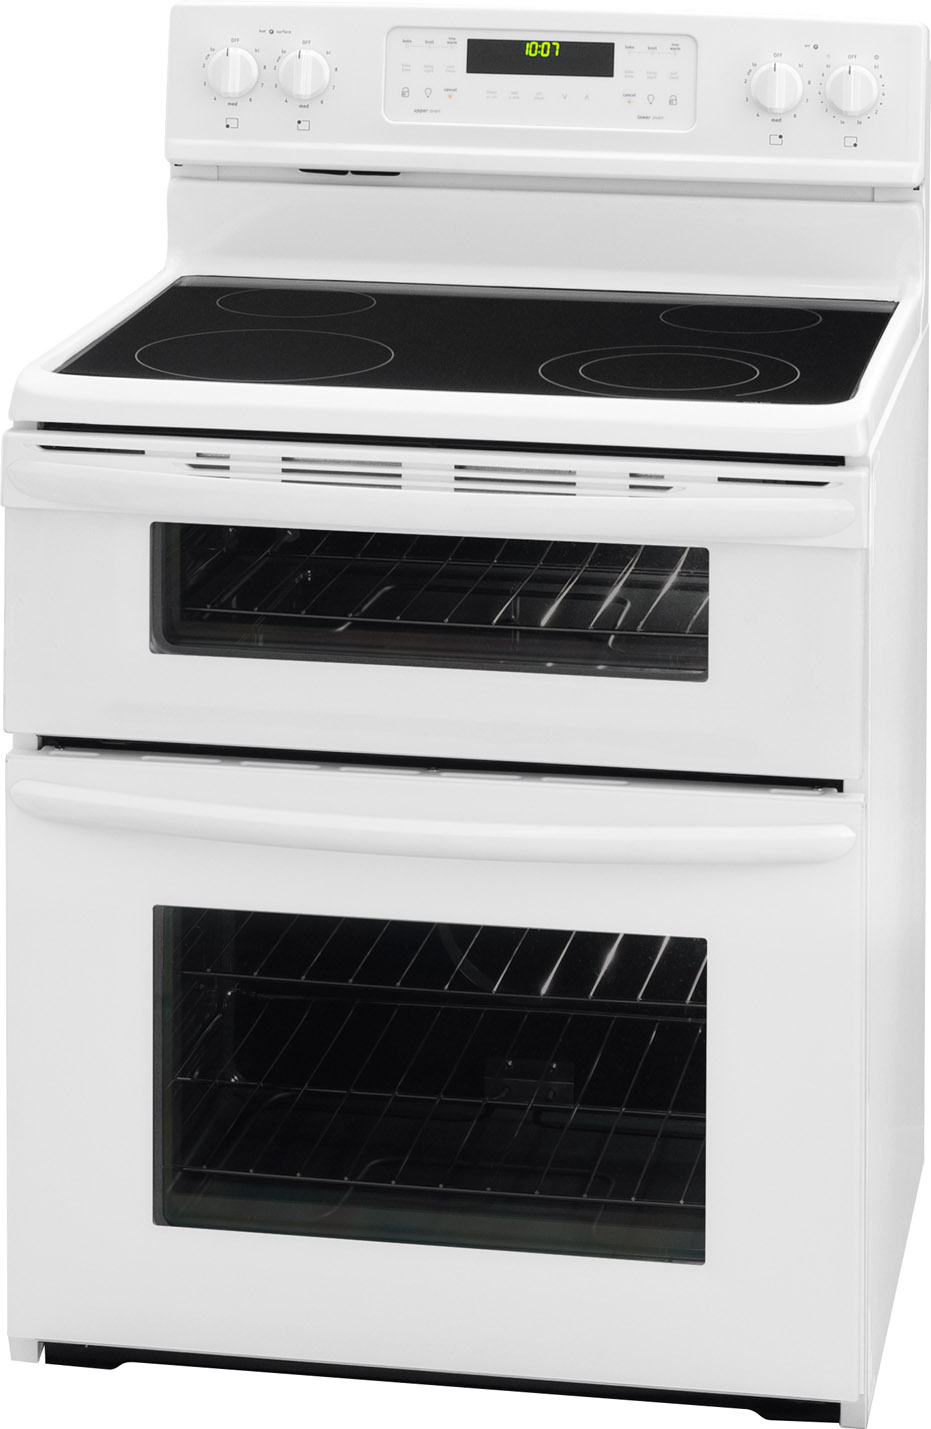 Frigidaire Gallery 6.64 cu. ft. Double-Oven Electric Range - White